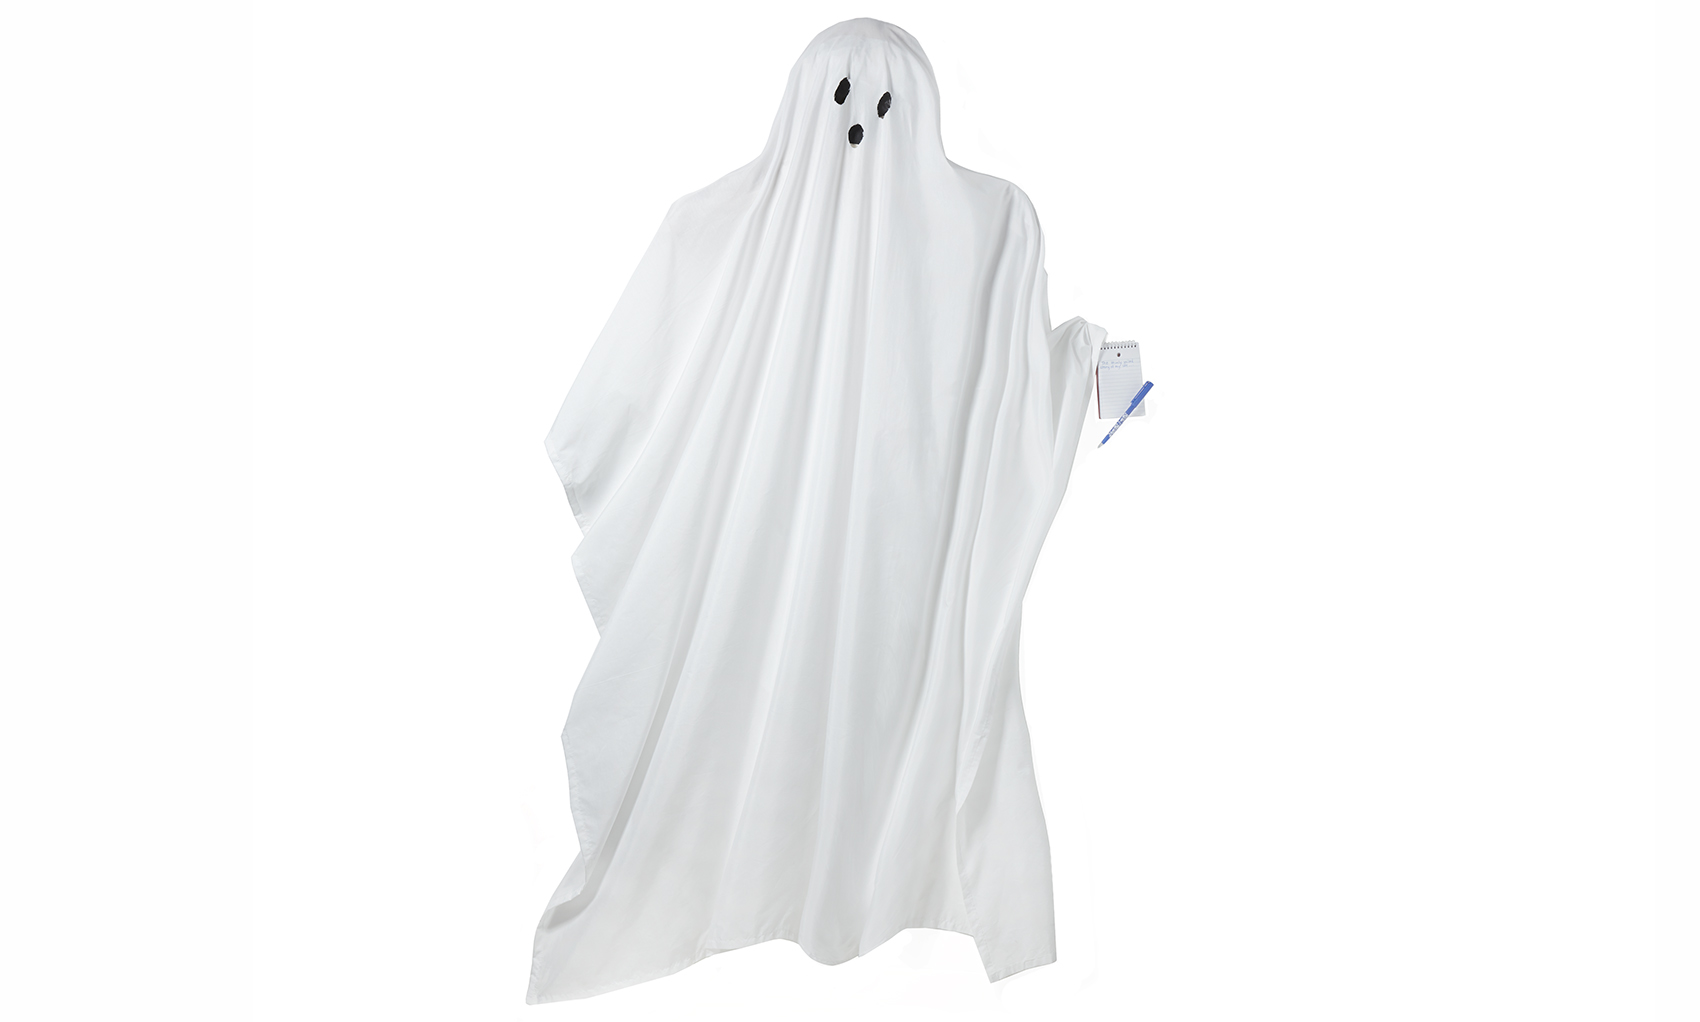 Ghostwriter costume